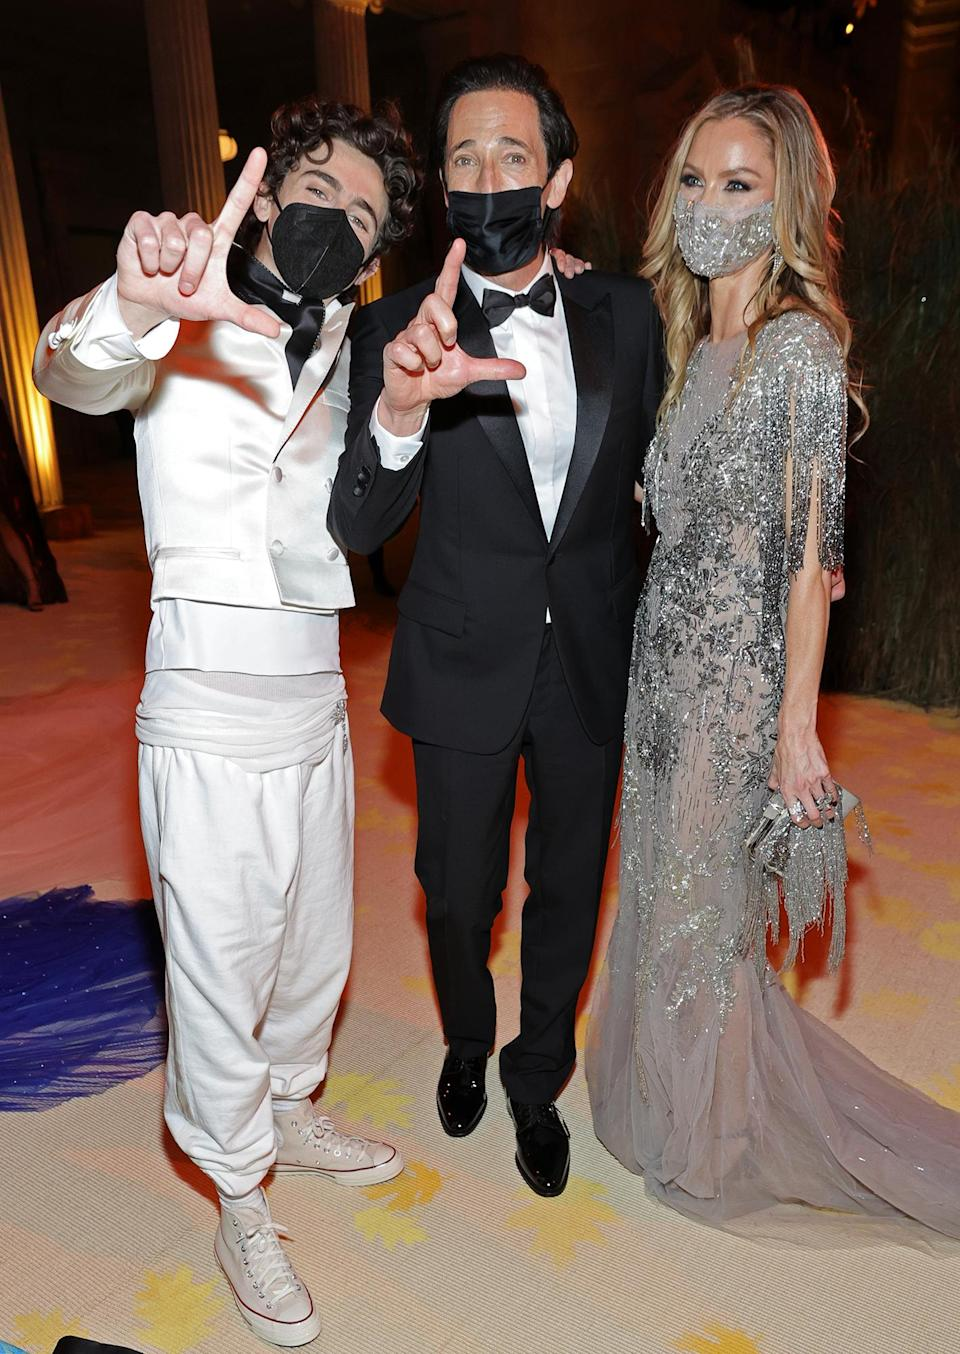 <p>posed with co-chair Chalamet for a playful photo inside the party – masks on, per rules, of course.</p>